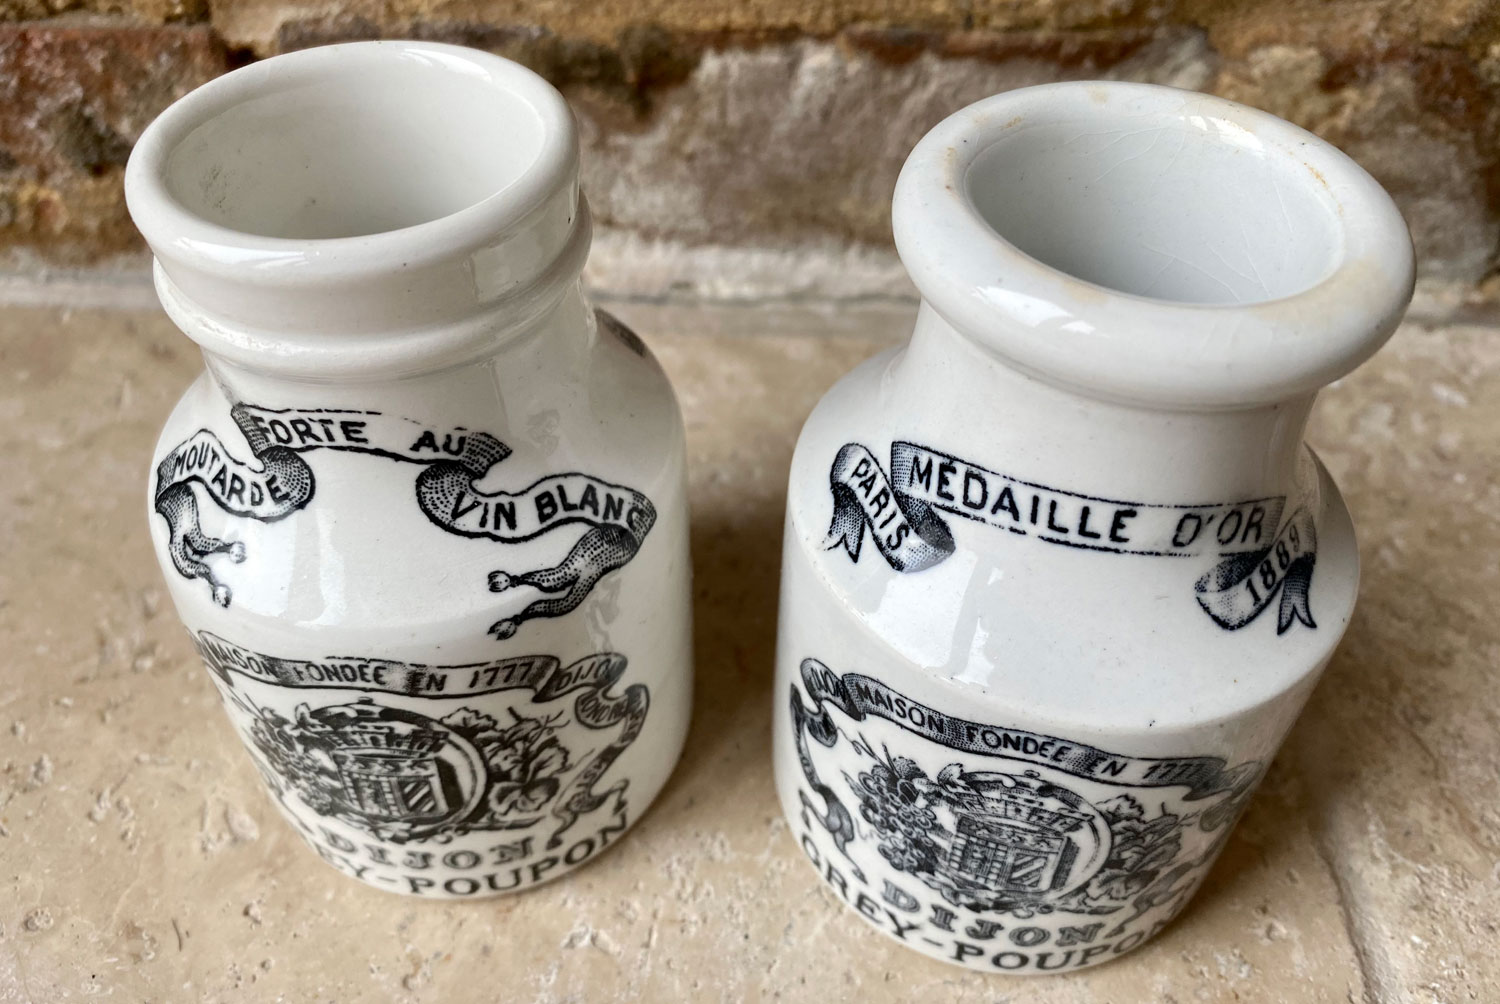 antique french sarreguemines early 20th century white ironstone advertising pot grey poupon french mustard